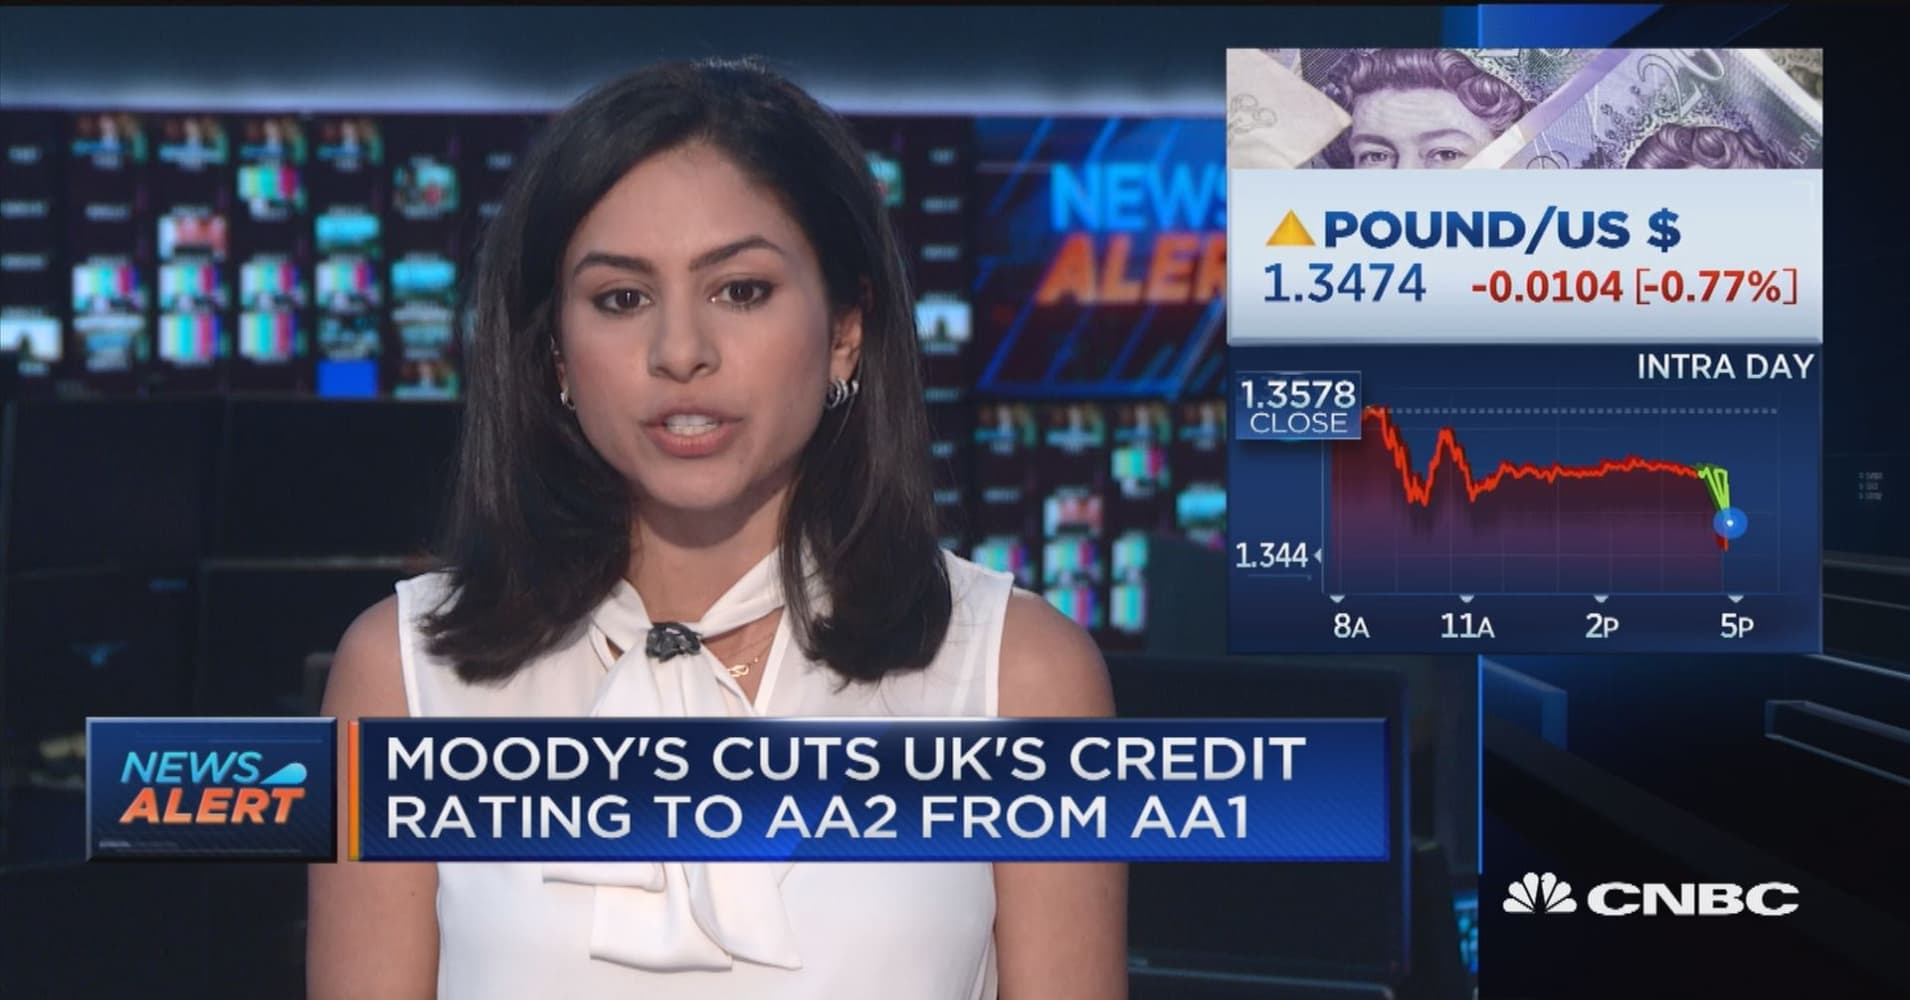 Moodys Cuts UKs Credit Rating To AA2 From AA1